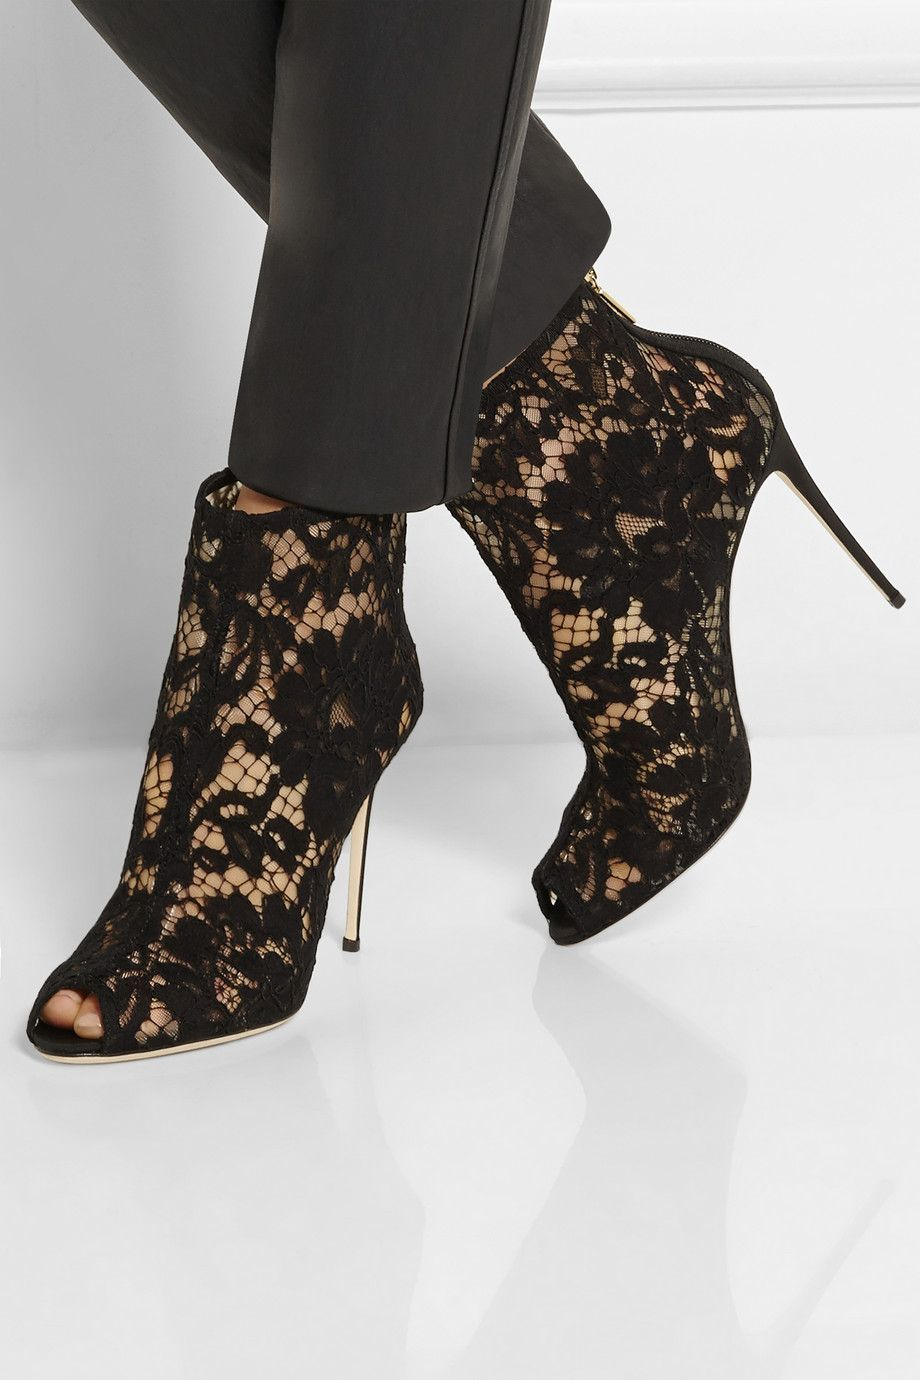 Dolce & Gabbana | Black lace and mesh peep-toe ankle boots | NET-